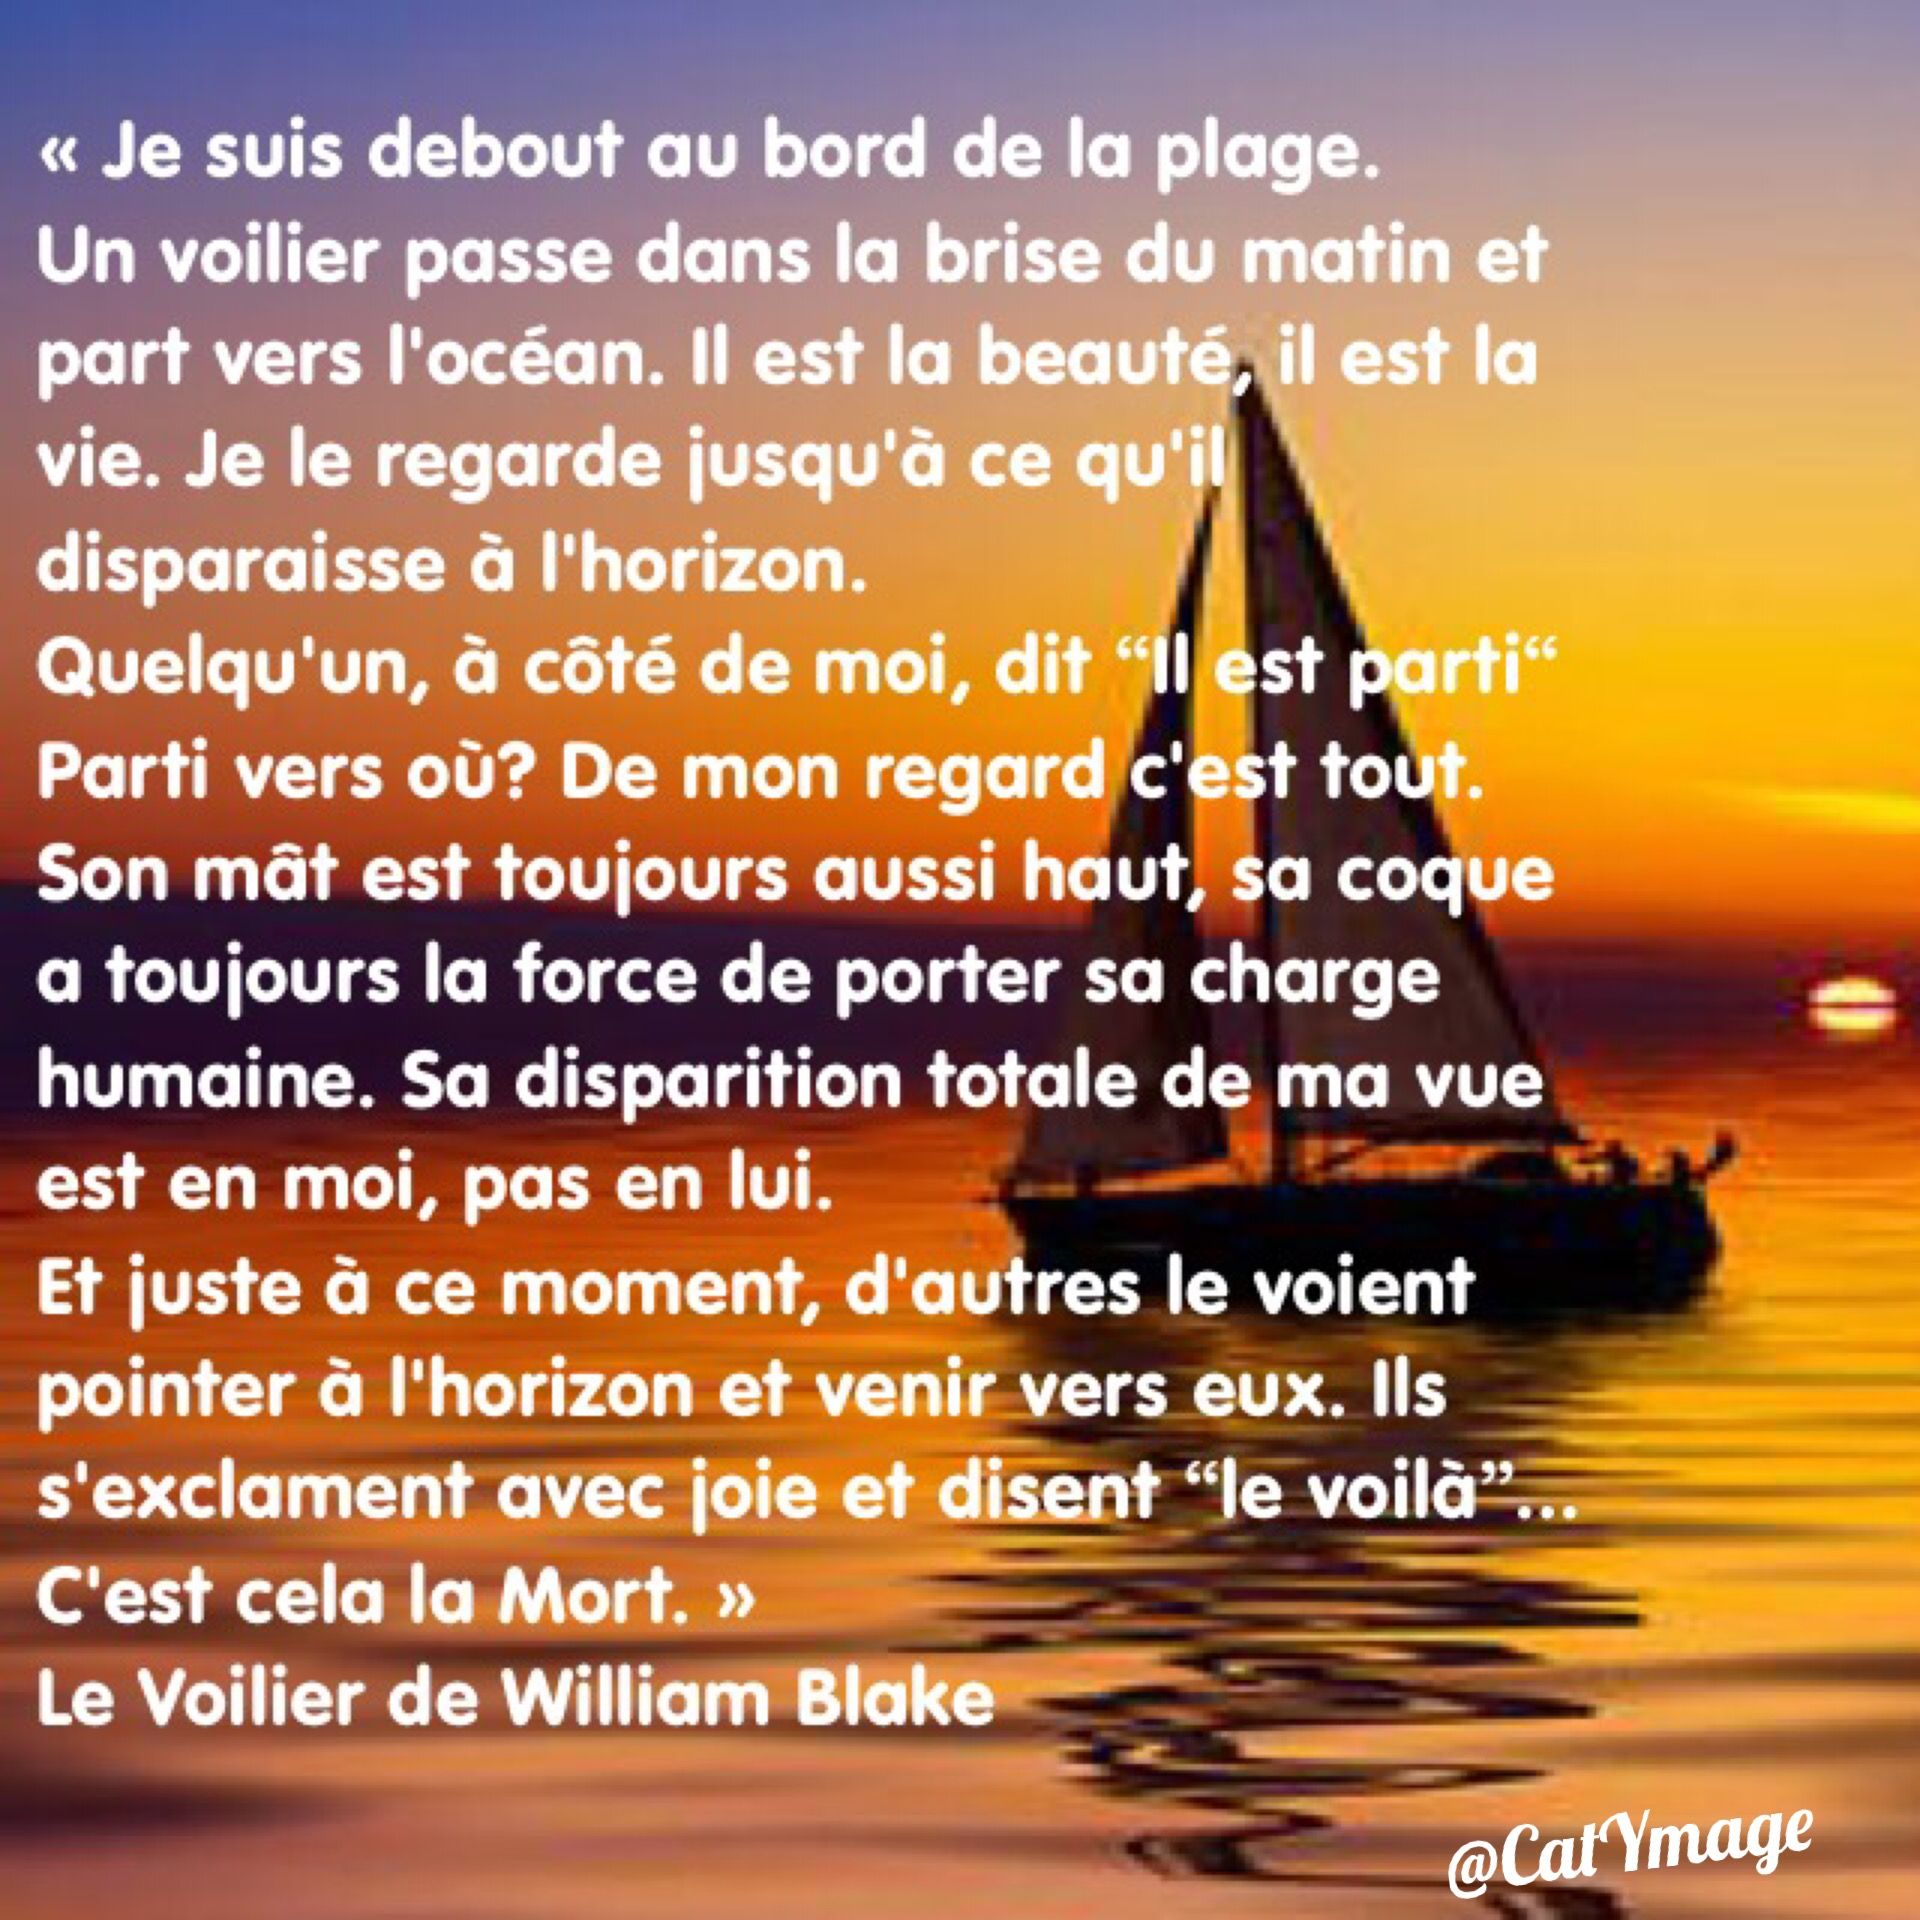 Le Voilier De William Blake William Blake Poème Mort